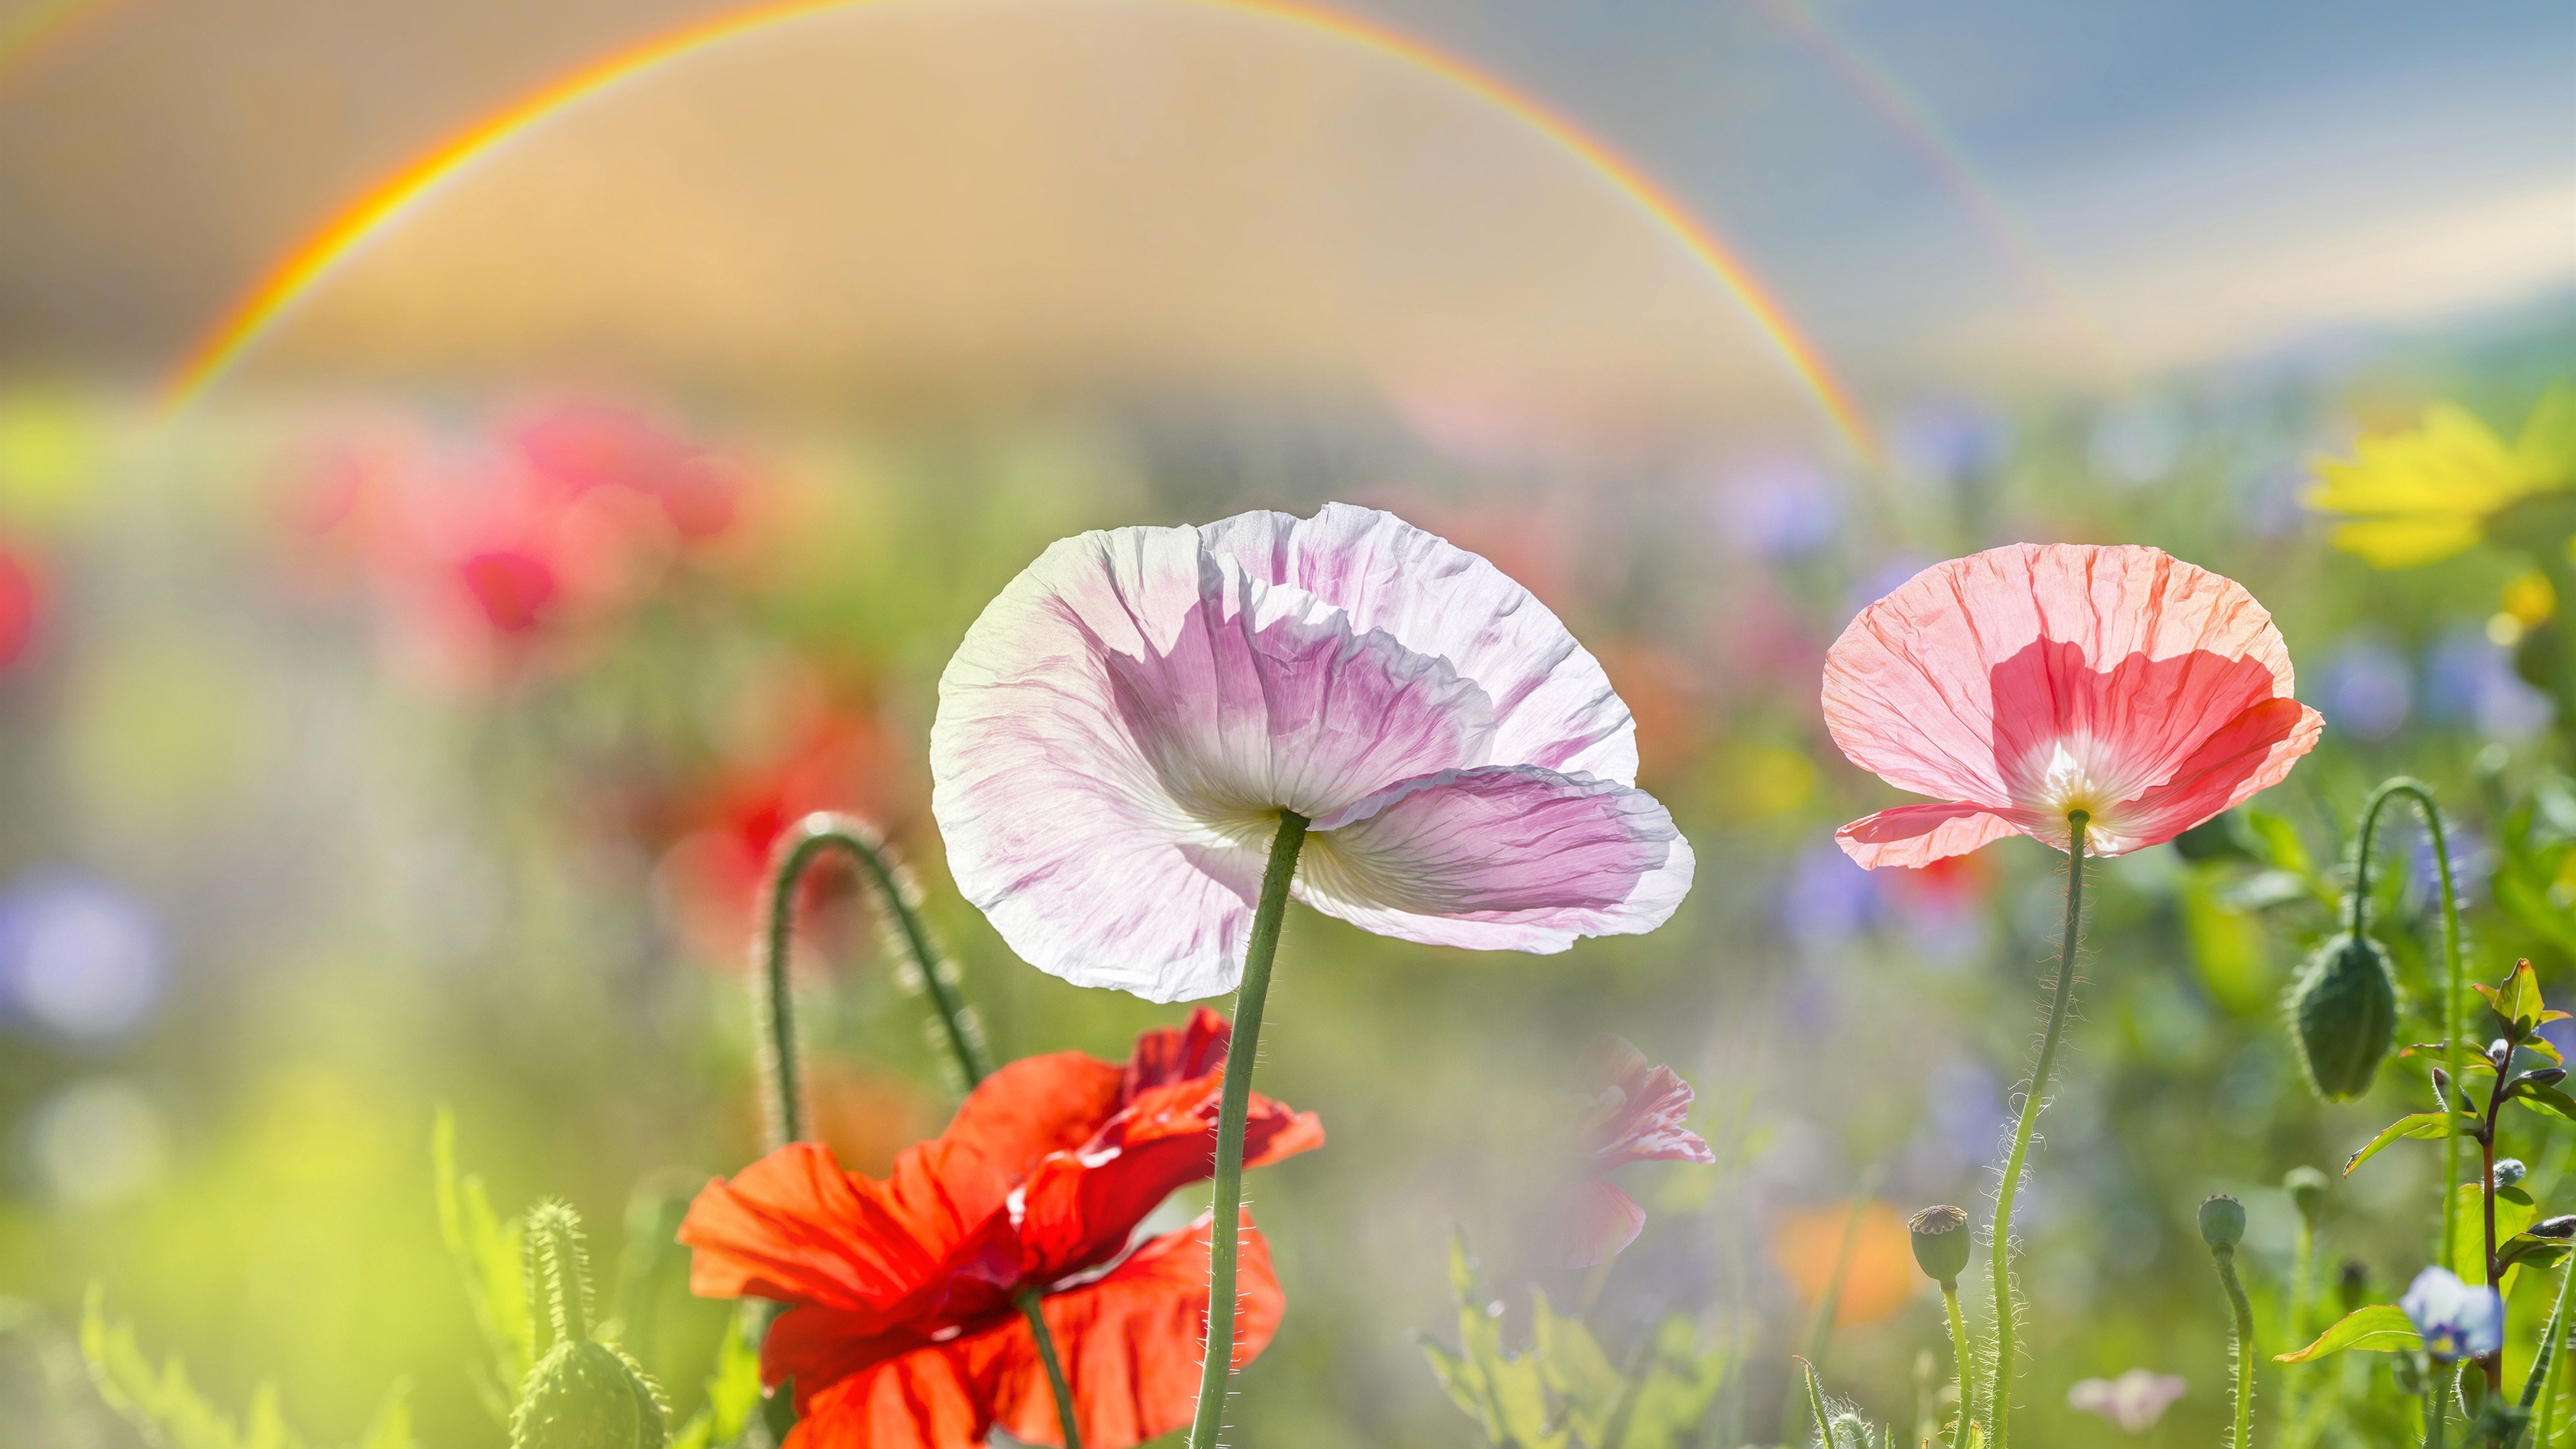 Summer Poppies Pink And Red Flowers Rainbow 1080x1920 Iphone 87